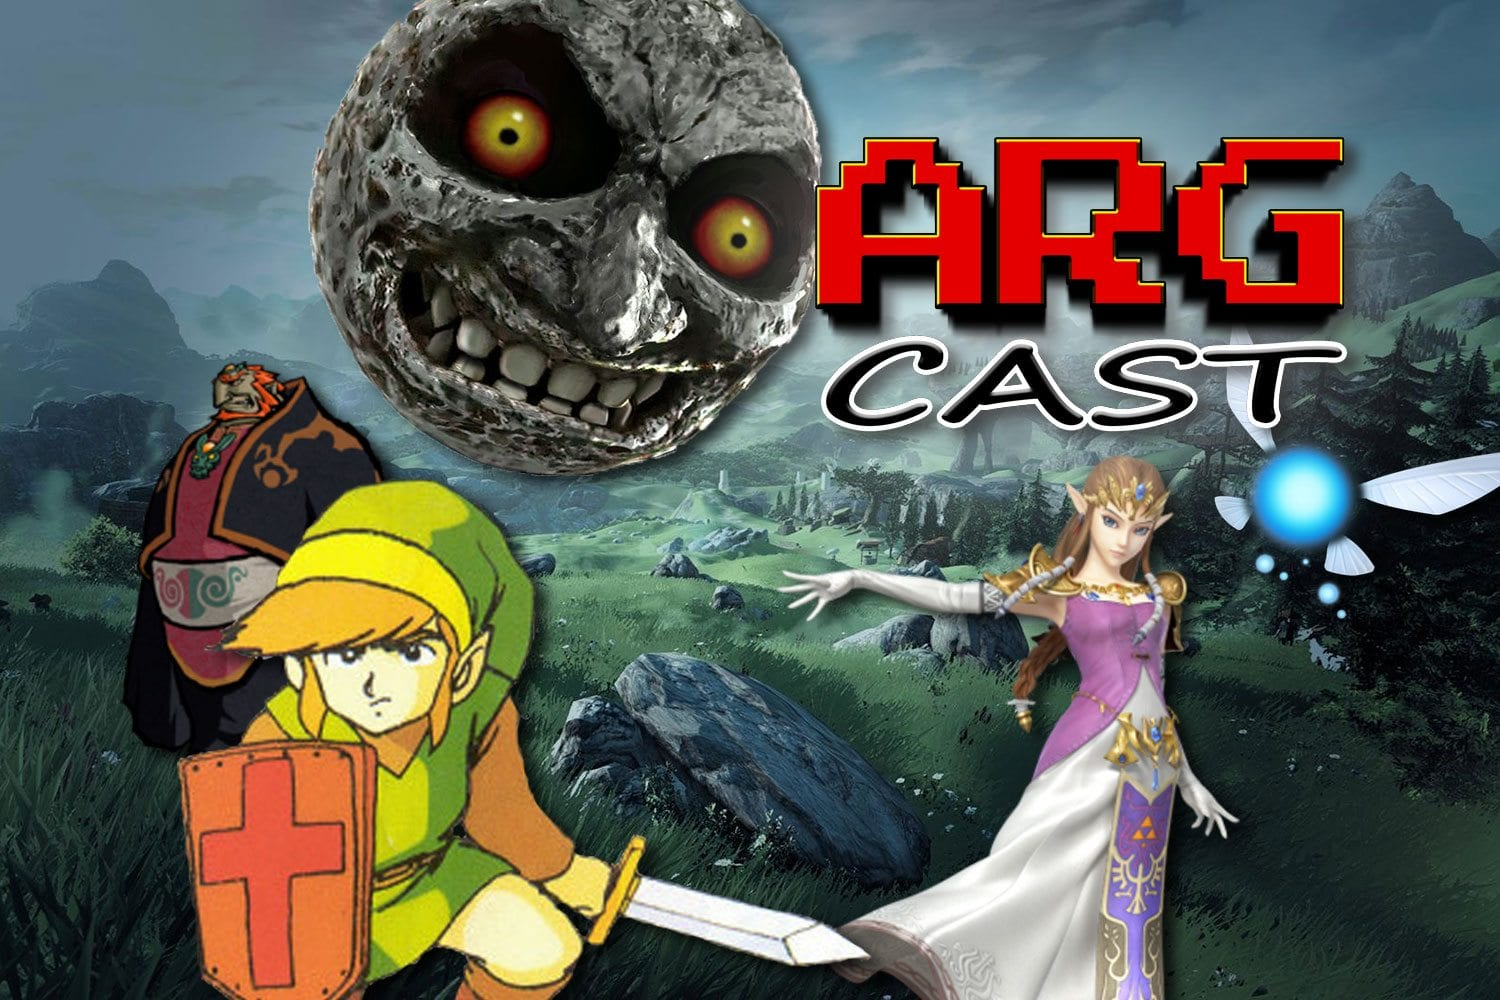 ARGcast #89: Embarking on Adventure in The Legend of Zelda with Katie da Silva